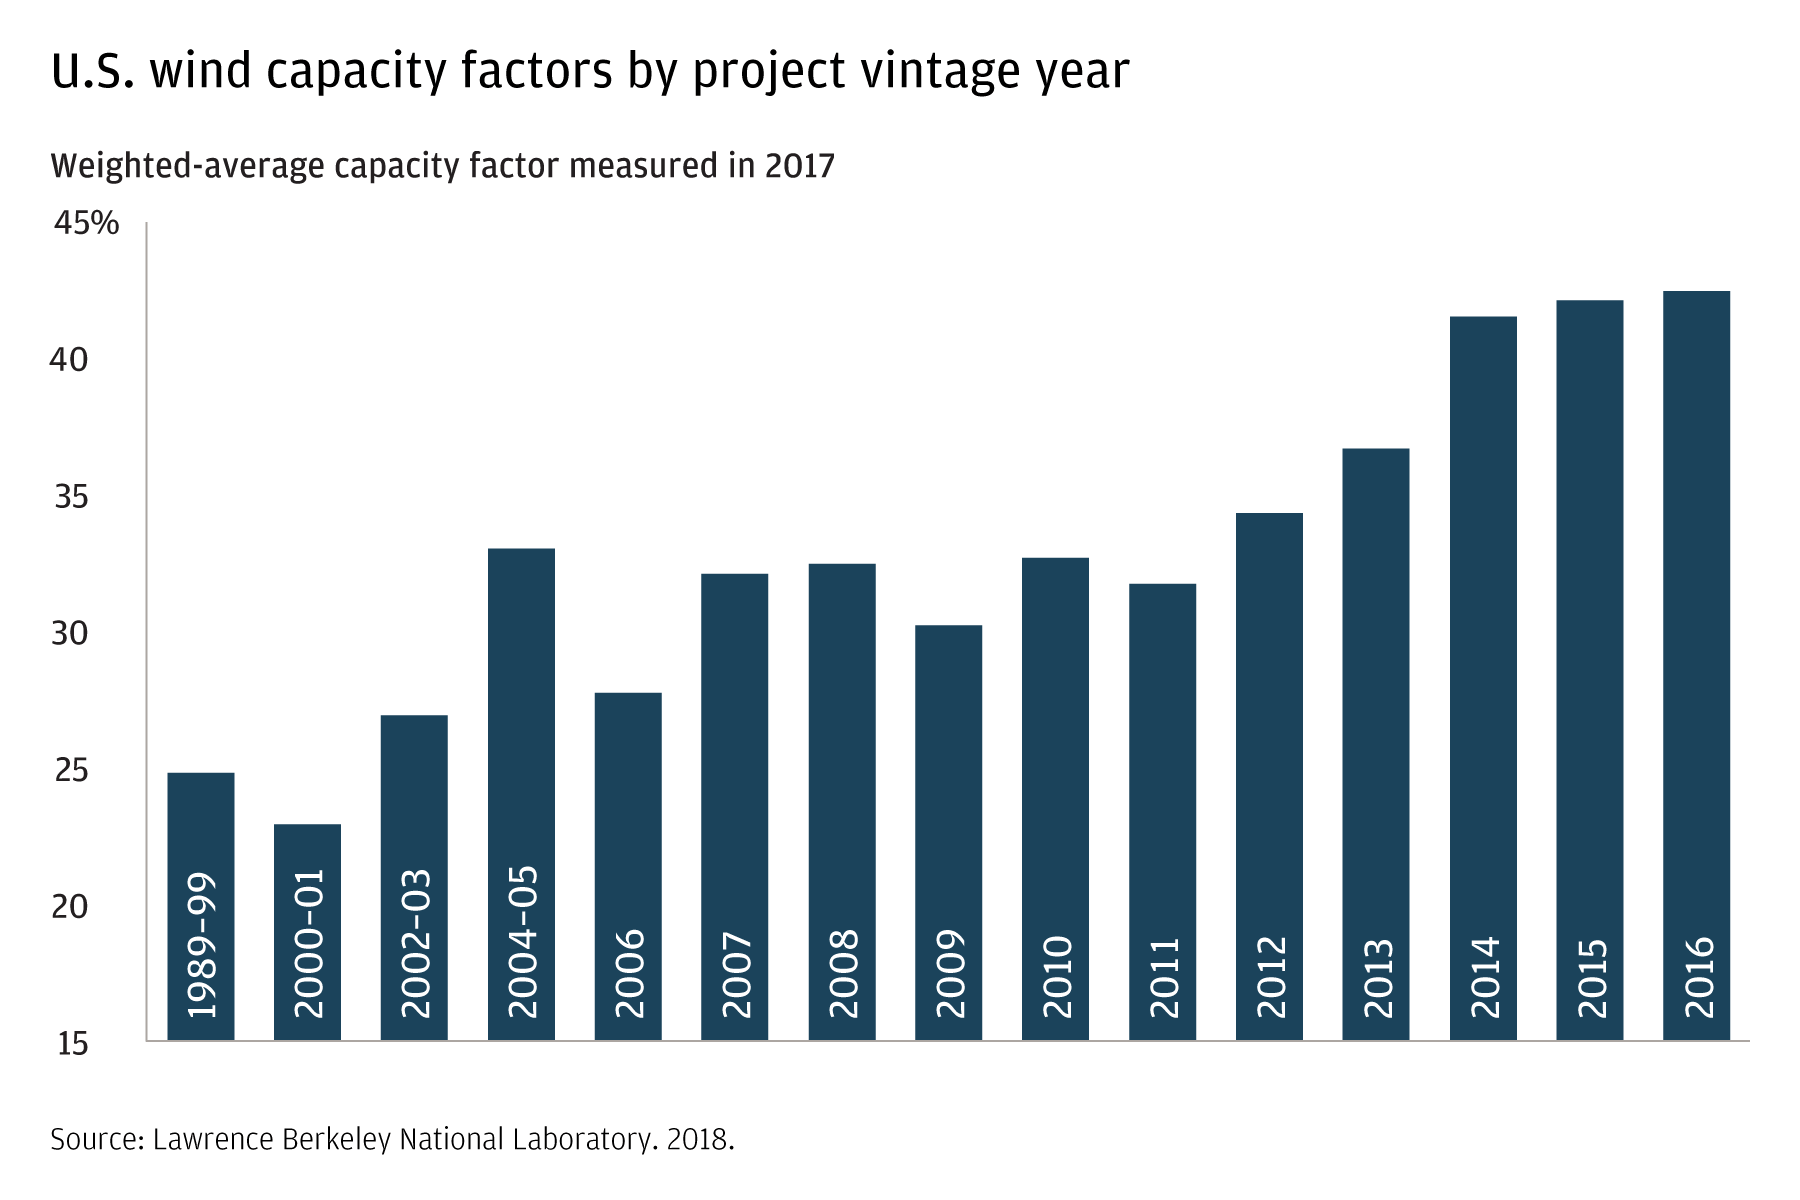 This bar chart shows the wind capacity factors by project vintage year from 1989 to 2016. In the 1989–99 period, we used 25 percent of capacity. By 2016, that had grown to approximately 43 percent.